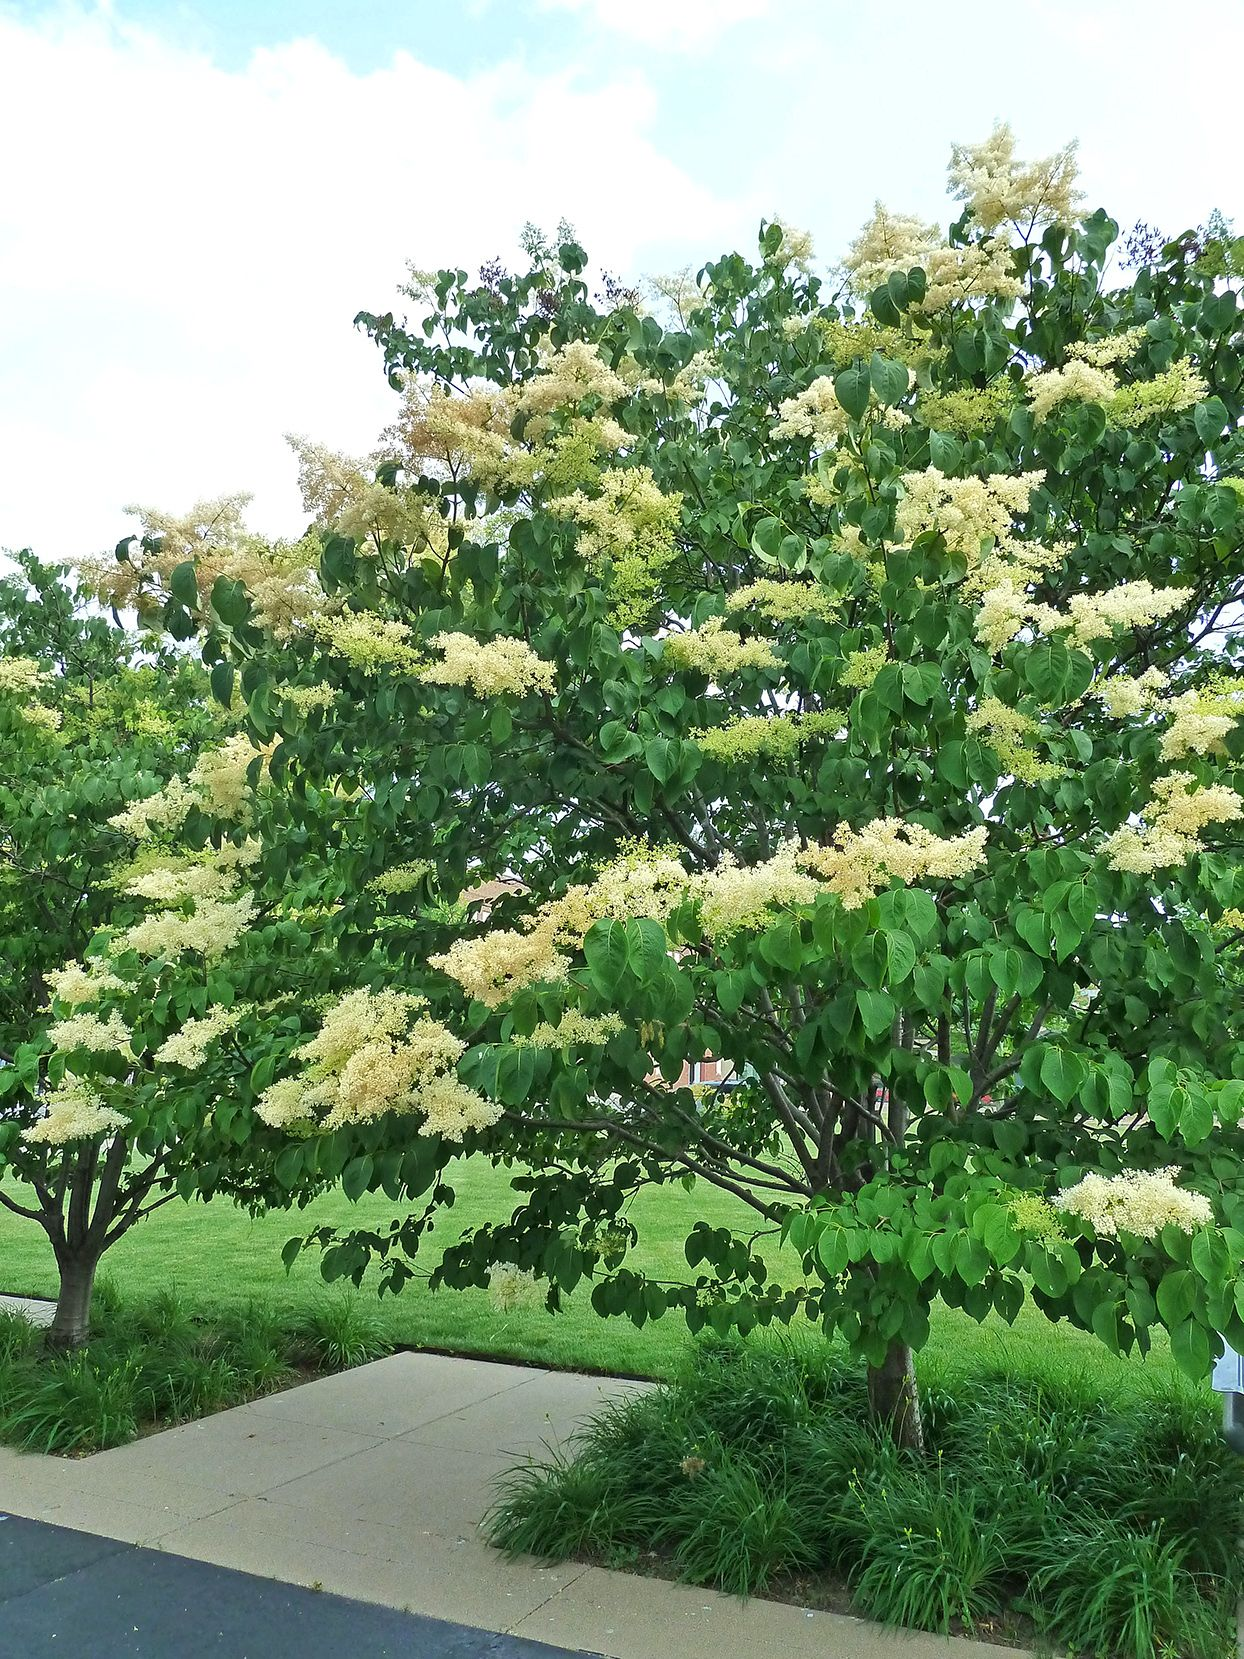 Lilac Tree Syringa Fragrant Flowering Japanese Tree Lilac To Get The Same Perfume In The Garden As Shrub Lila Fragrant Flowers Lilac Tree Japanese Lilac Tree